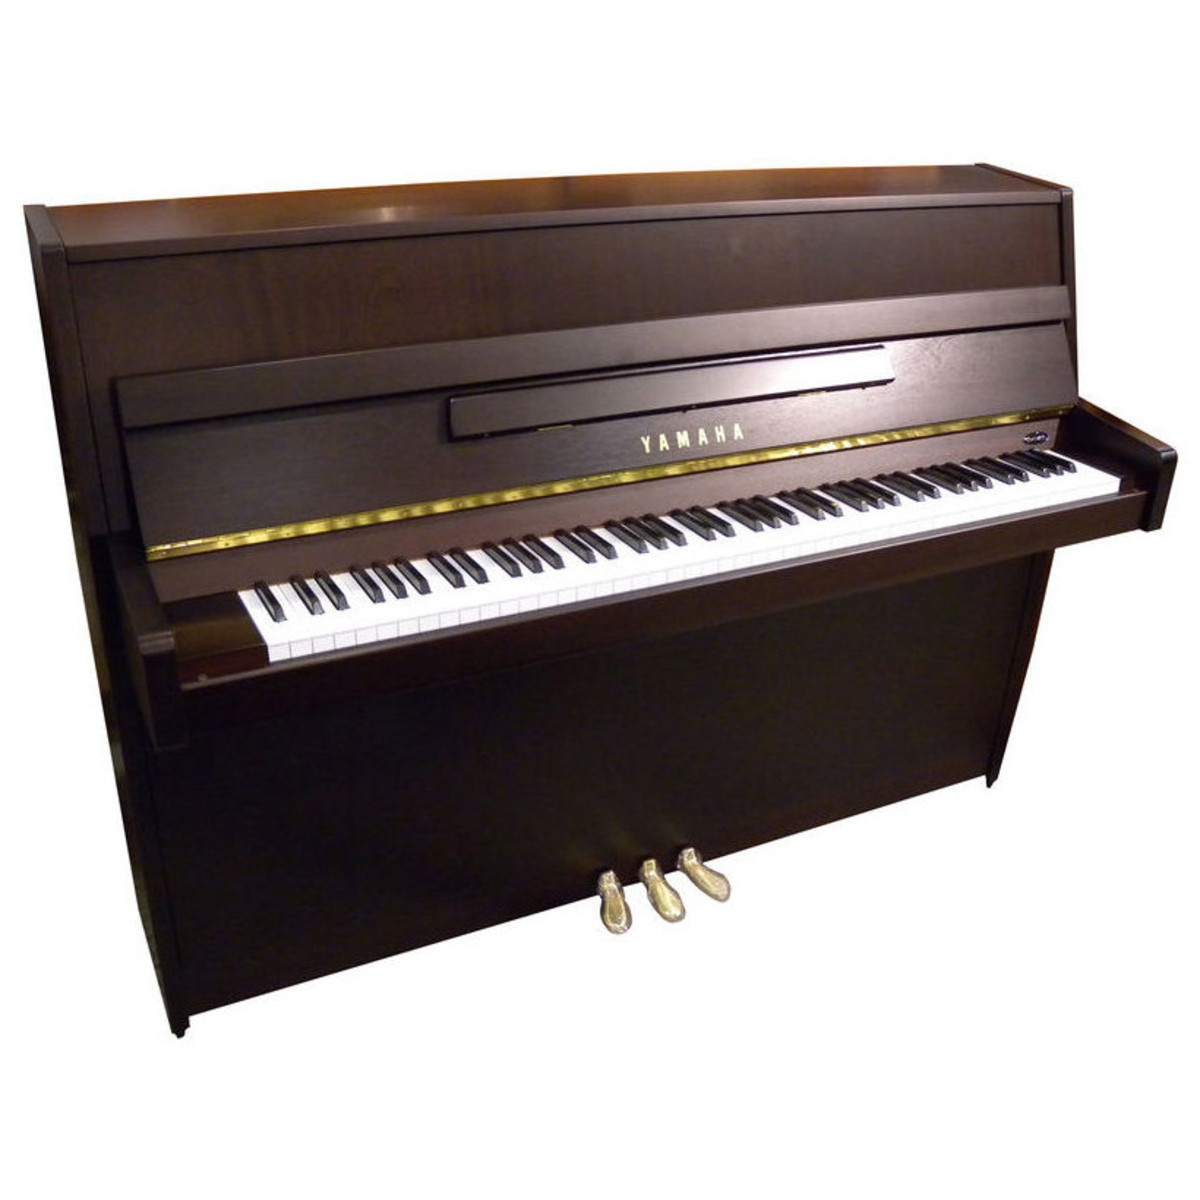 Offlineyamaha b1 upright acoustic piano dark walnut satin for Yamaha piano upright